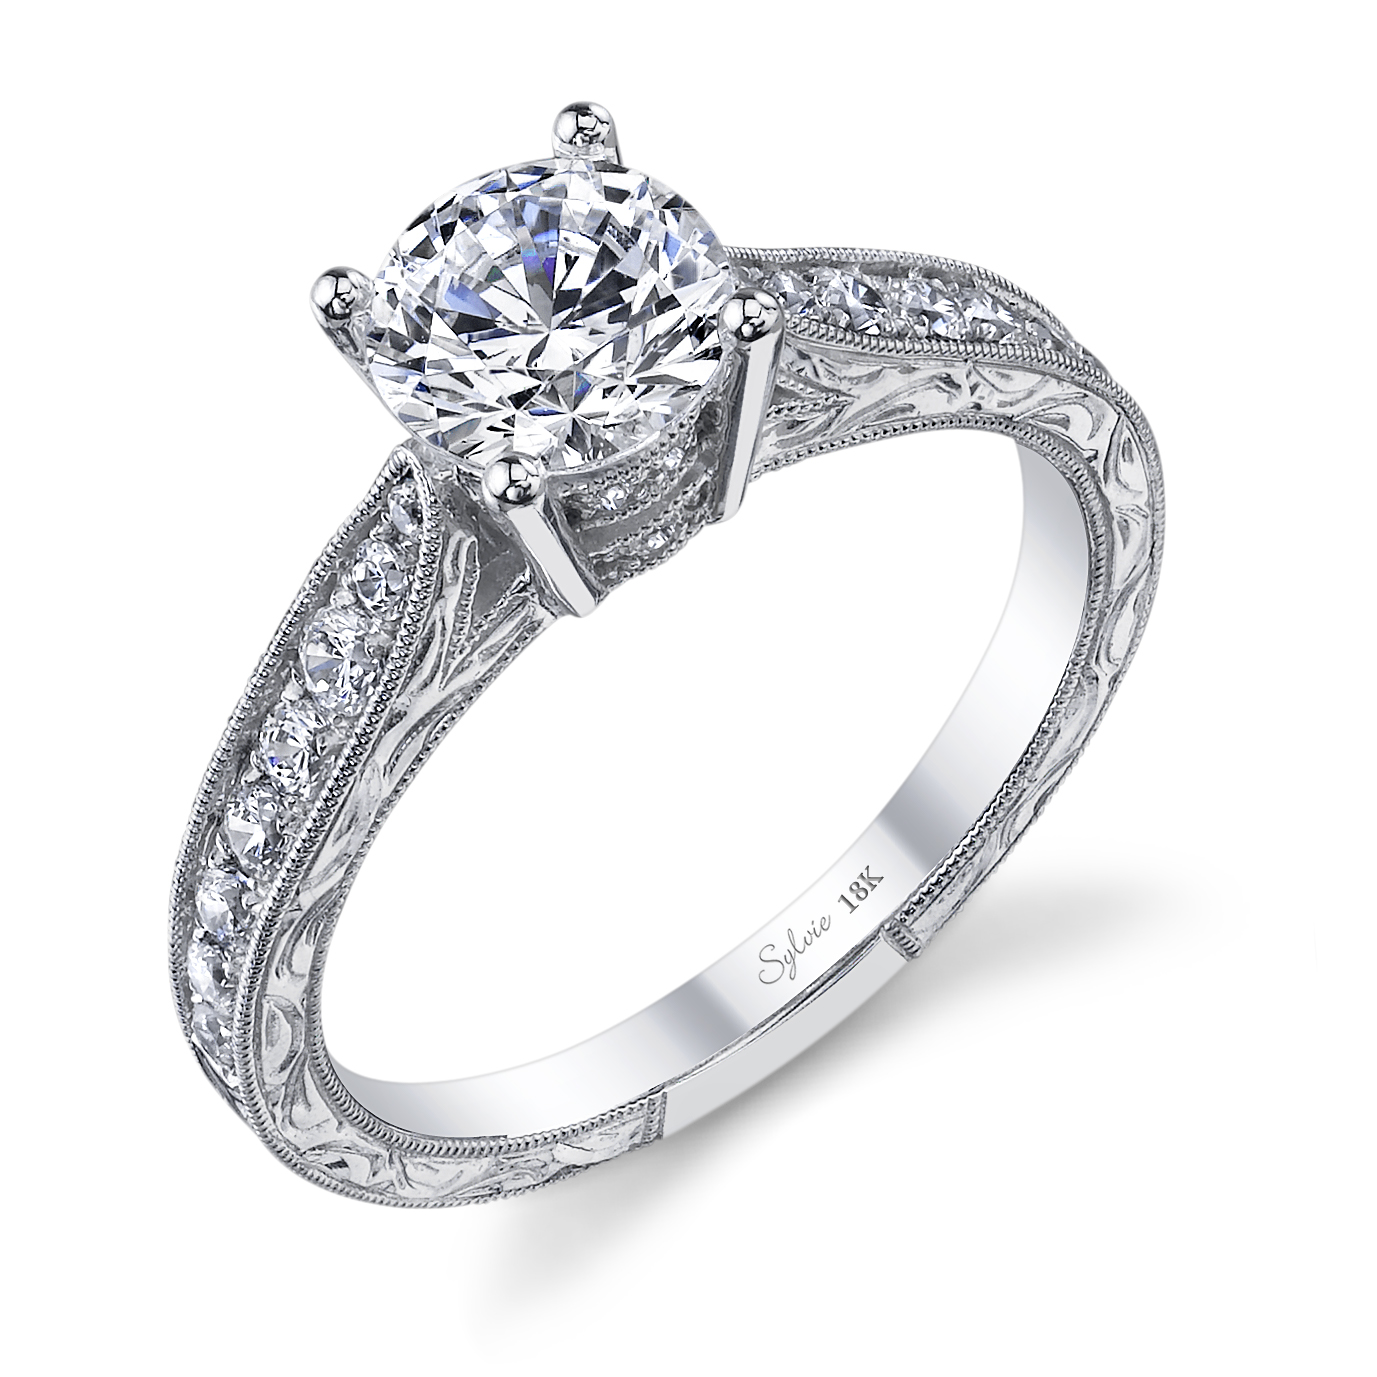 Sy982: Diamond Engagement Ring By Sylvie Collection Made With 18k White  Gold, 1 Carat Round Center Diamond And 032 Carats Of Surrounding Diamonds